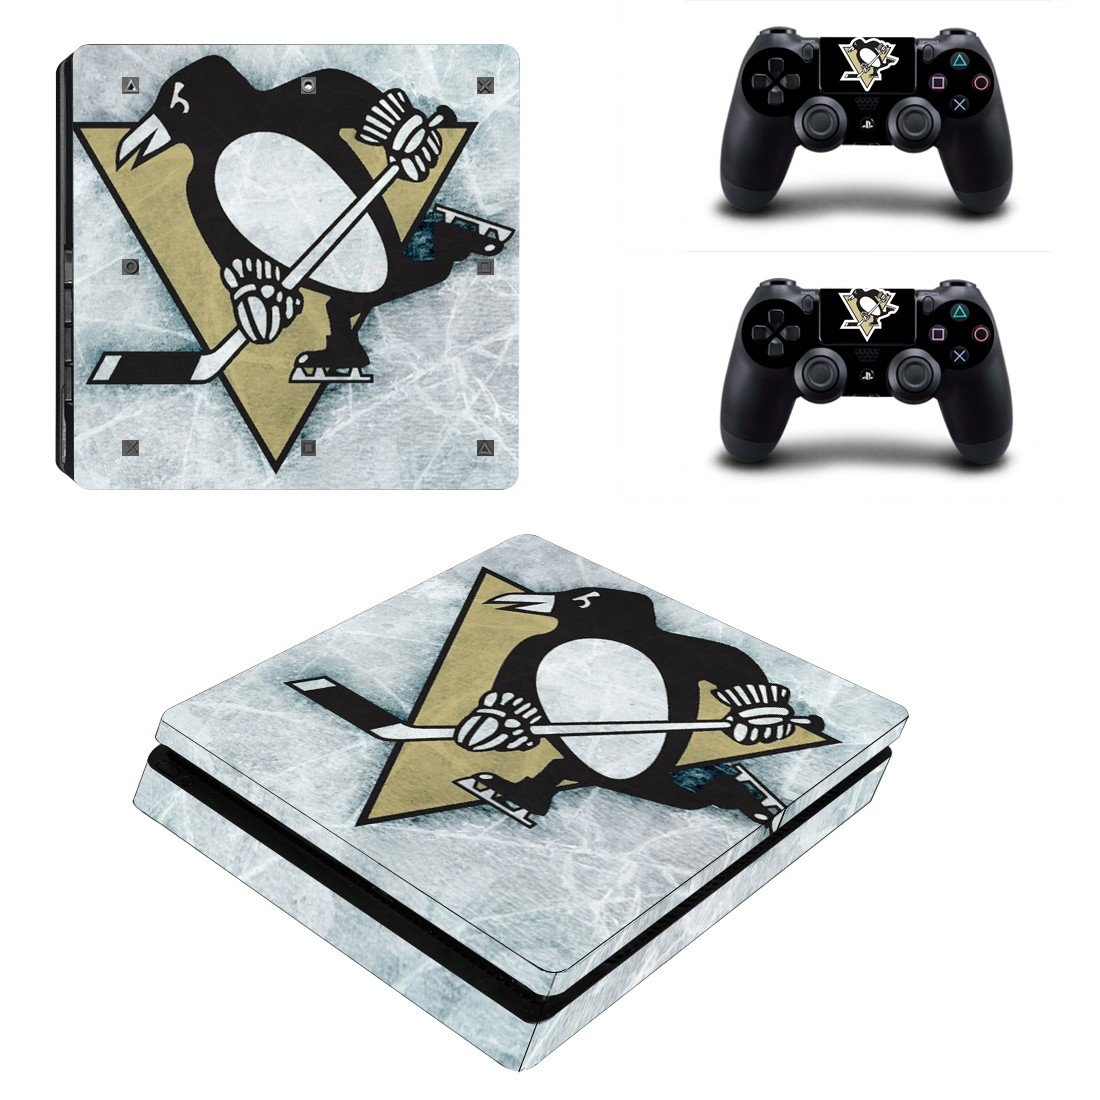 pittsburgh penguins ice logo Play Station 4 slim skin decal for console and 2 controllers